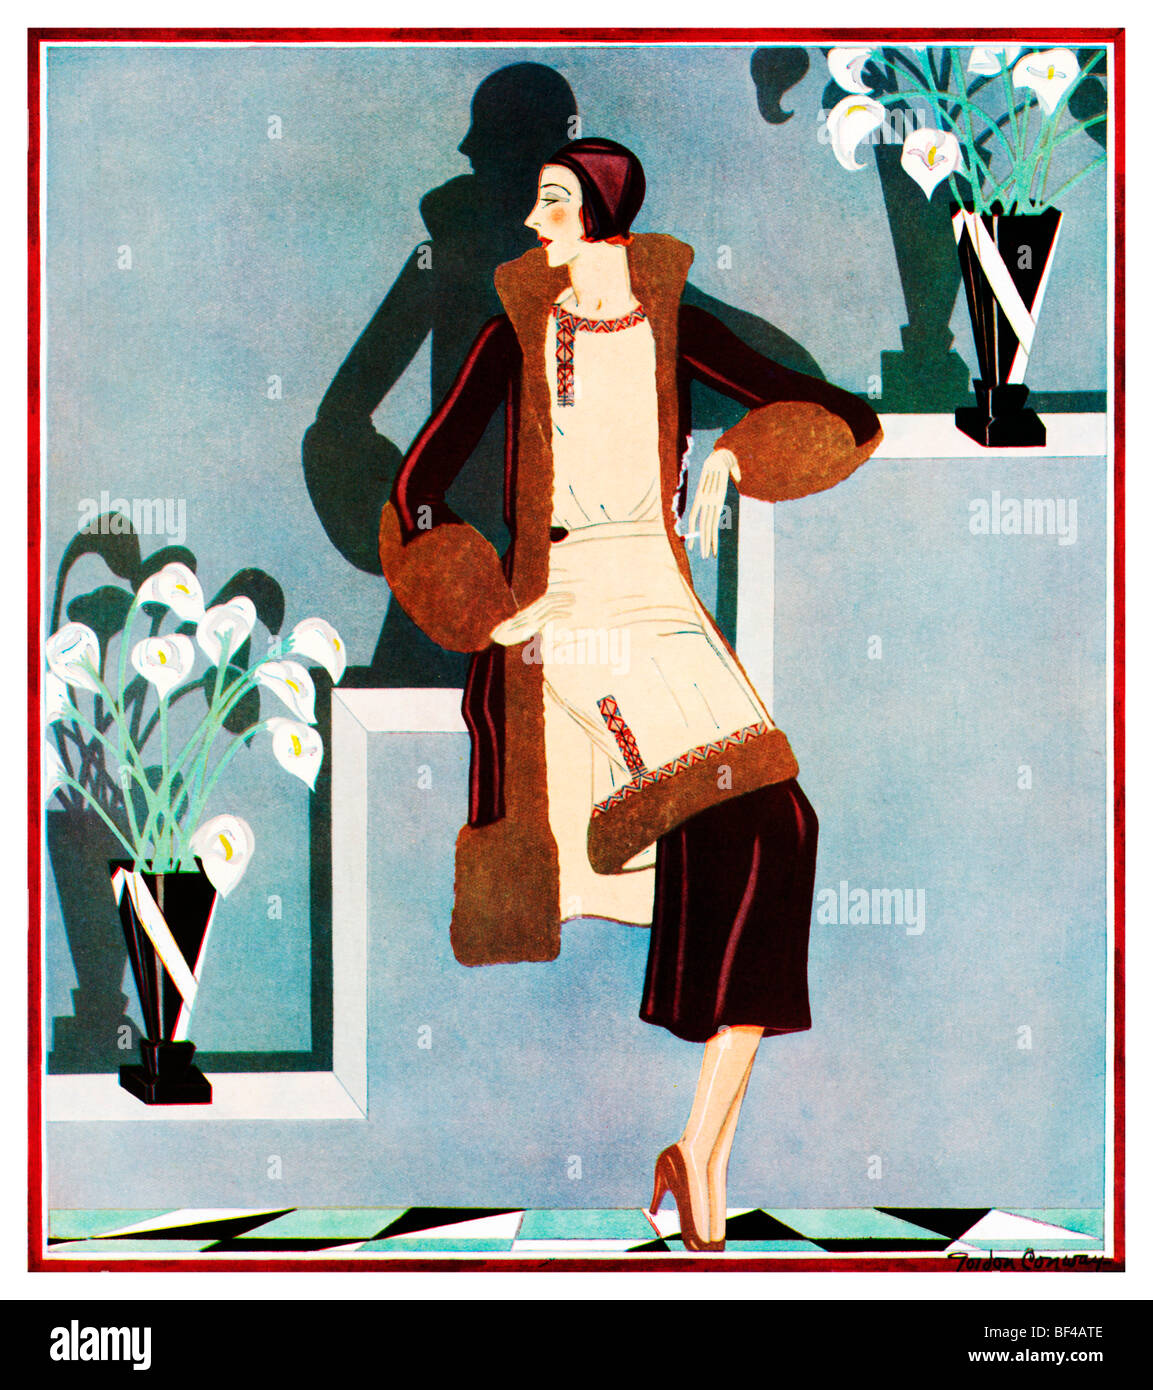 afternoon in velvet beautiful 1930s art deco fashion illustration of stock photo 26526542 alamy. Black Bedroom Furniture Sets. Home Design Ideas